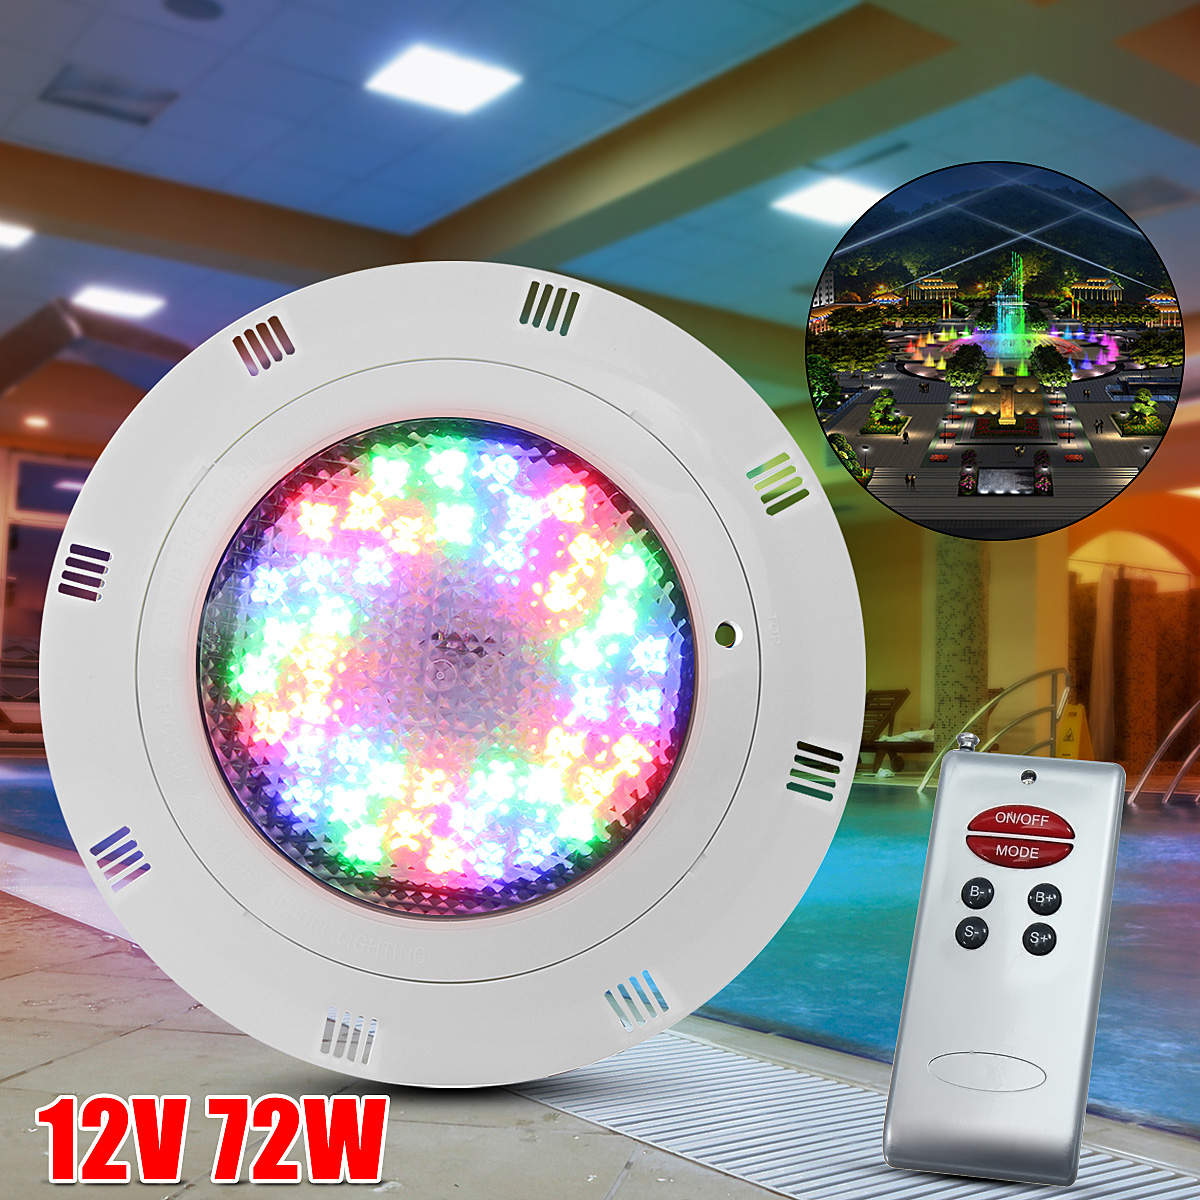 New 12V 72W RGB 7 Color LED Swimming Pool IP68 Underwater Light Bright Wall Mounted Pond Lighting + Remote Control